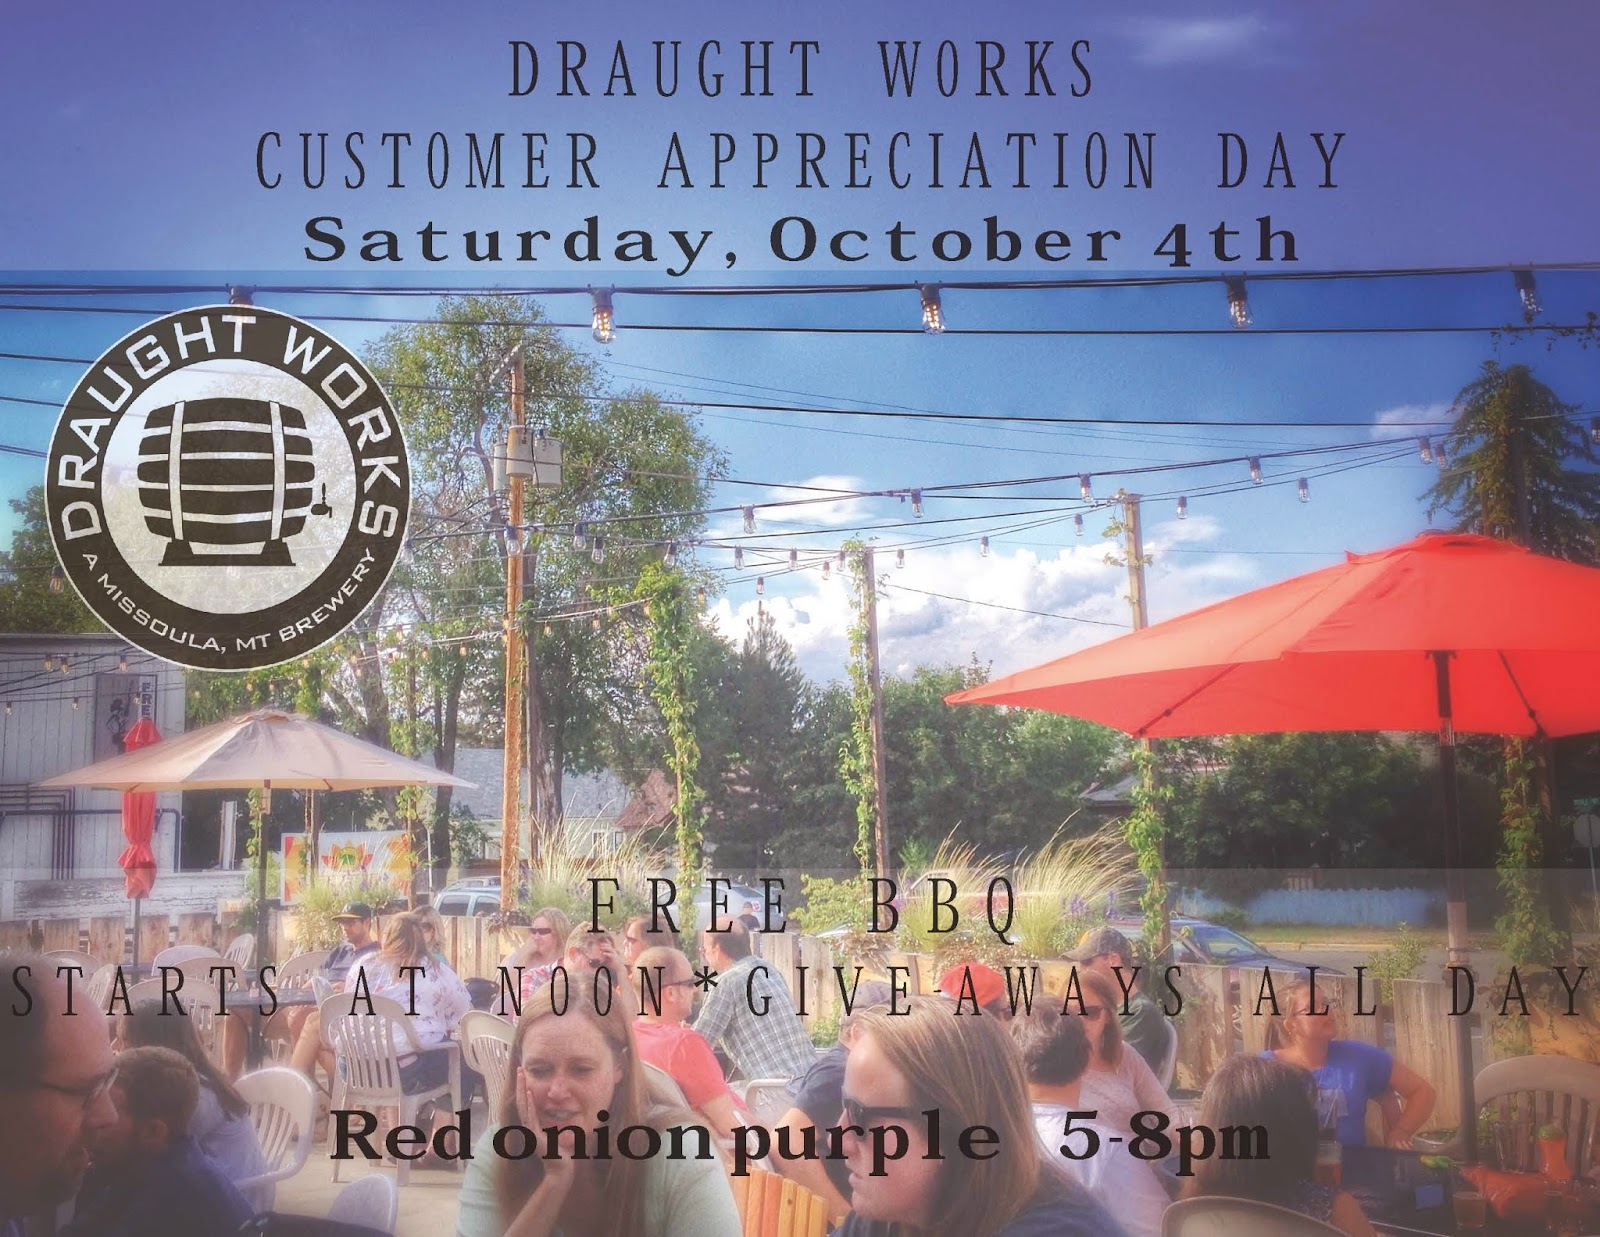 3rd Annual Draught Works Customer Appreciation Day